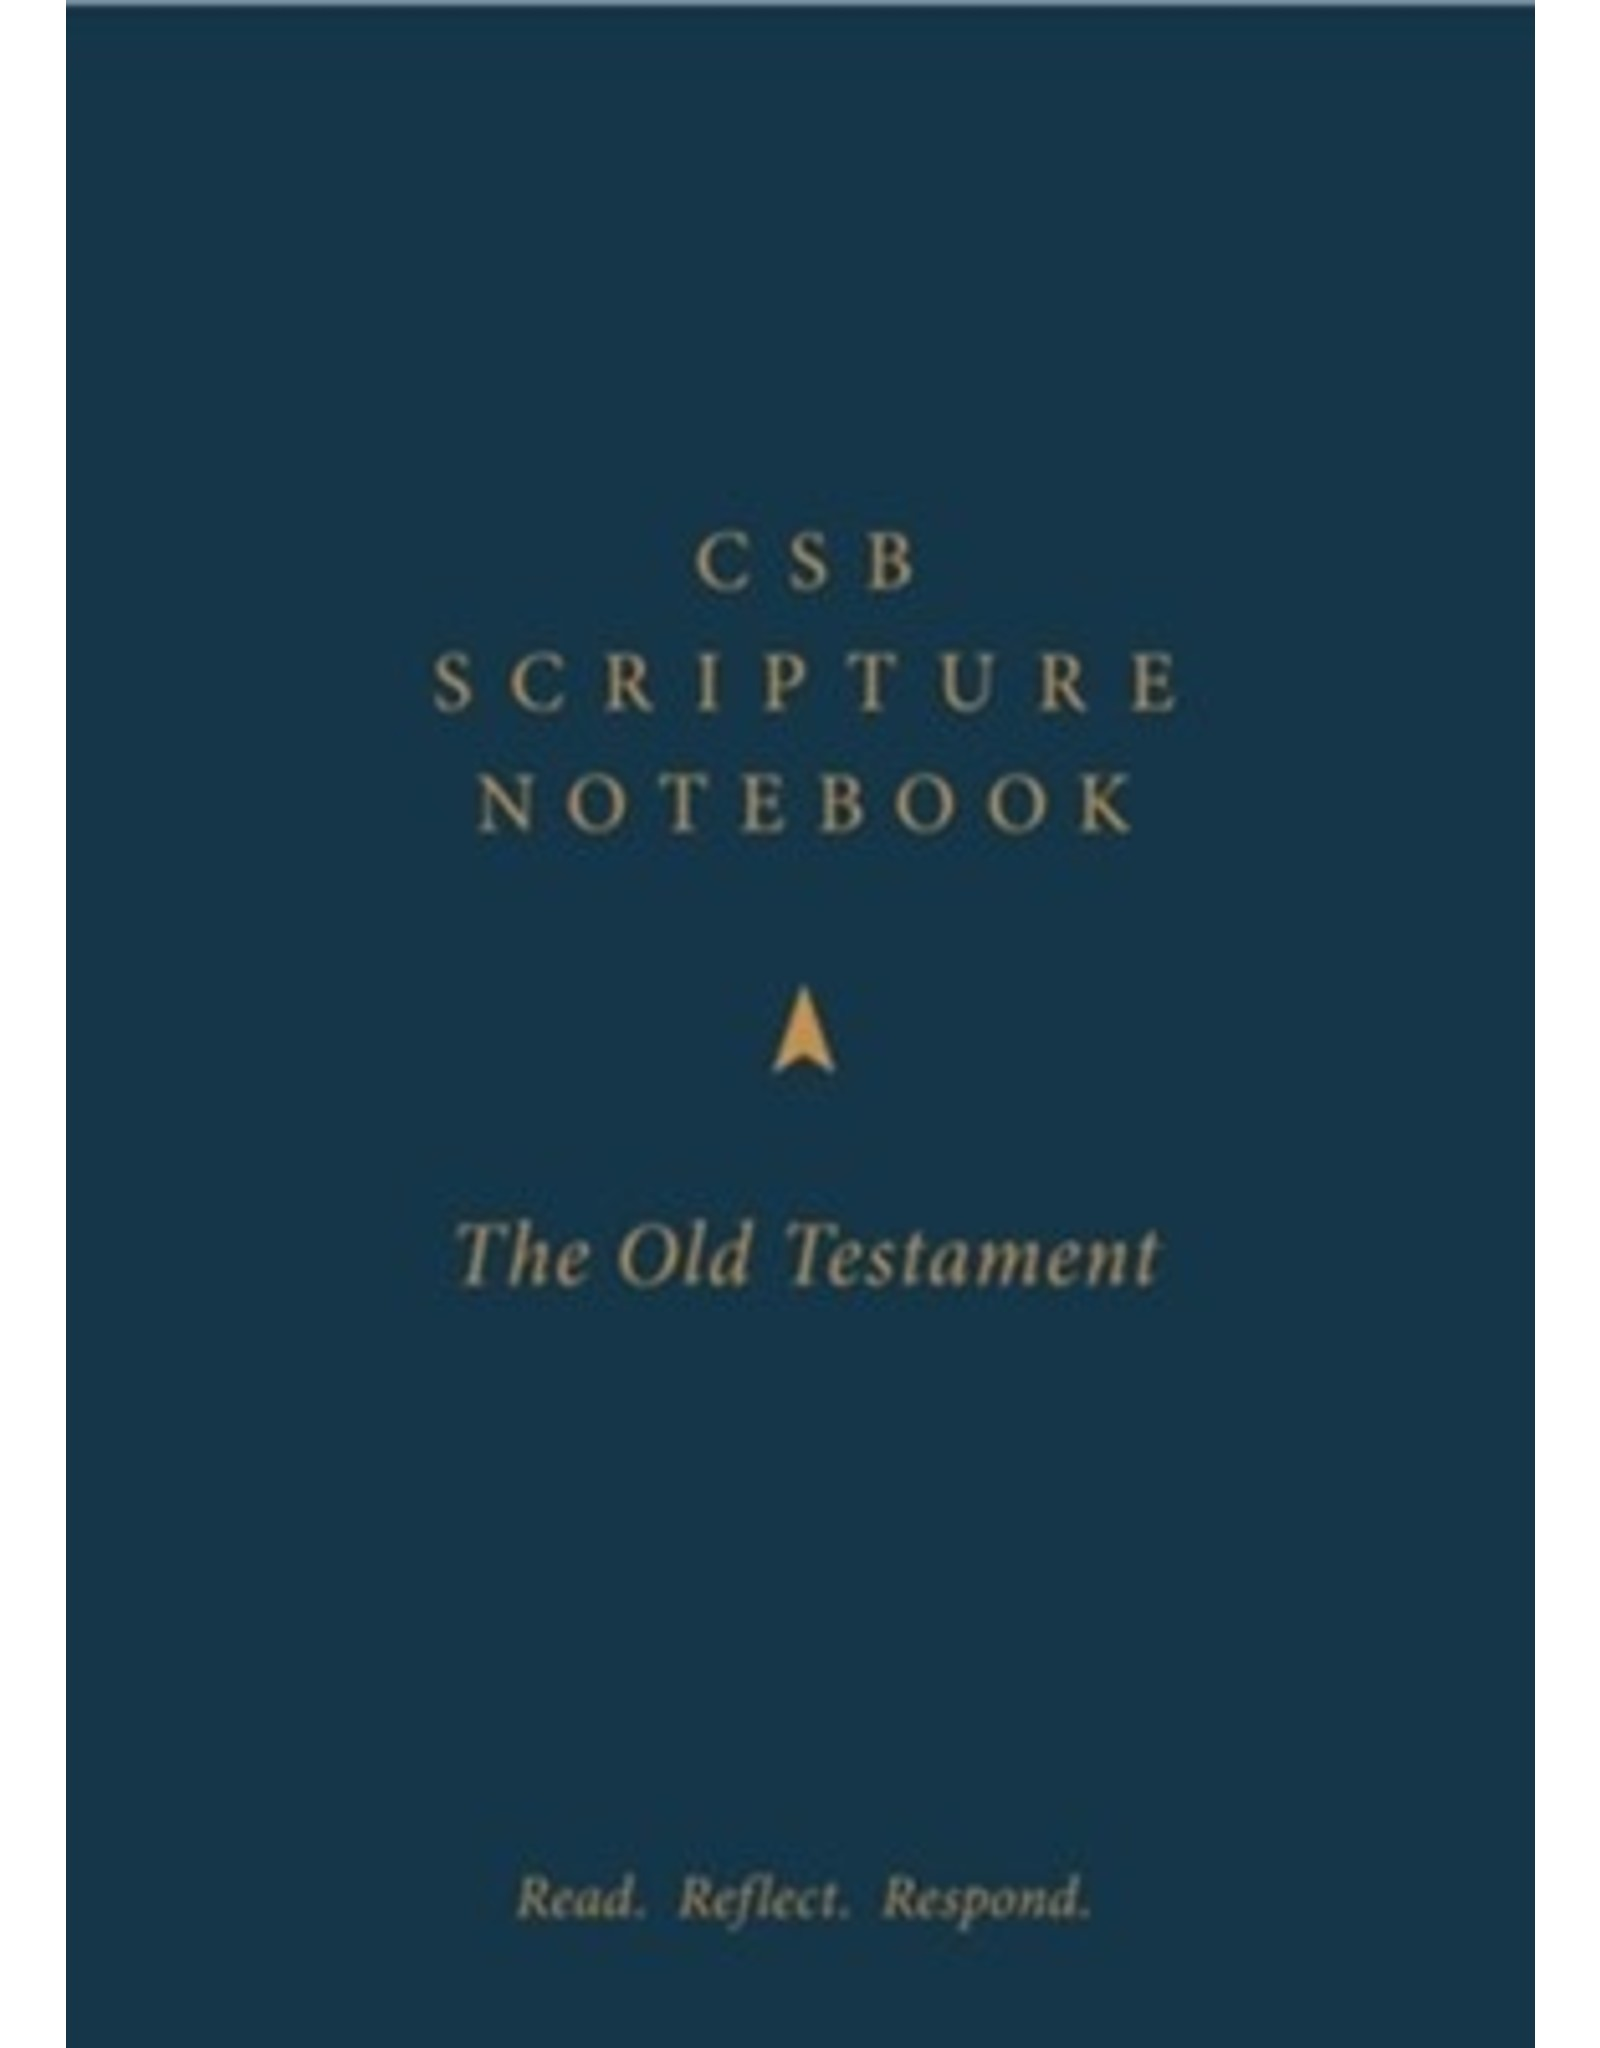 Holman CSB Scripture Notebook - Old testament set. softcover